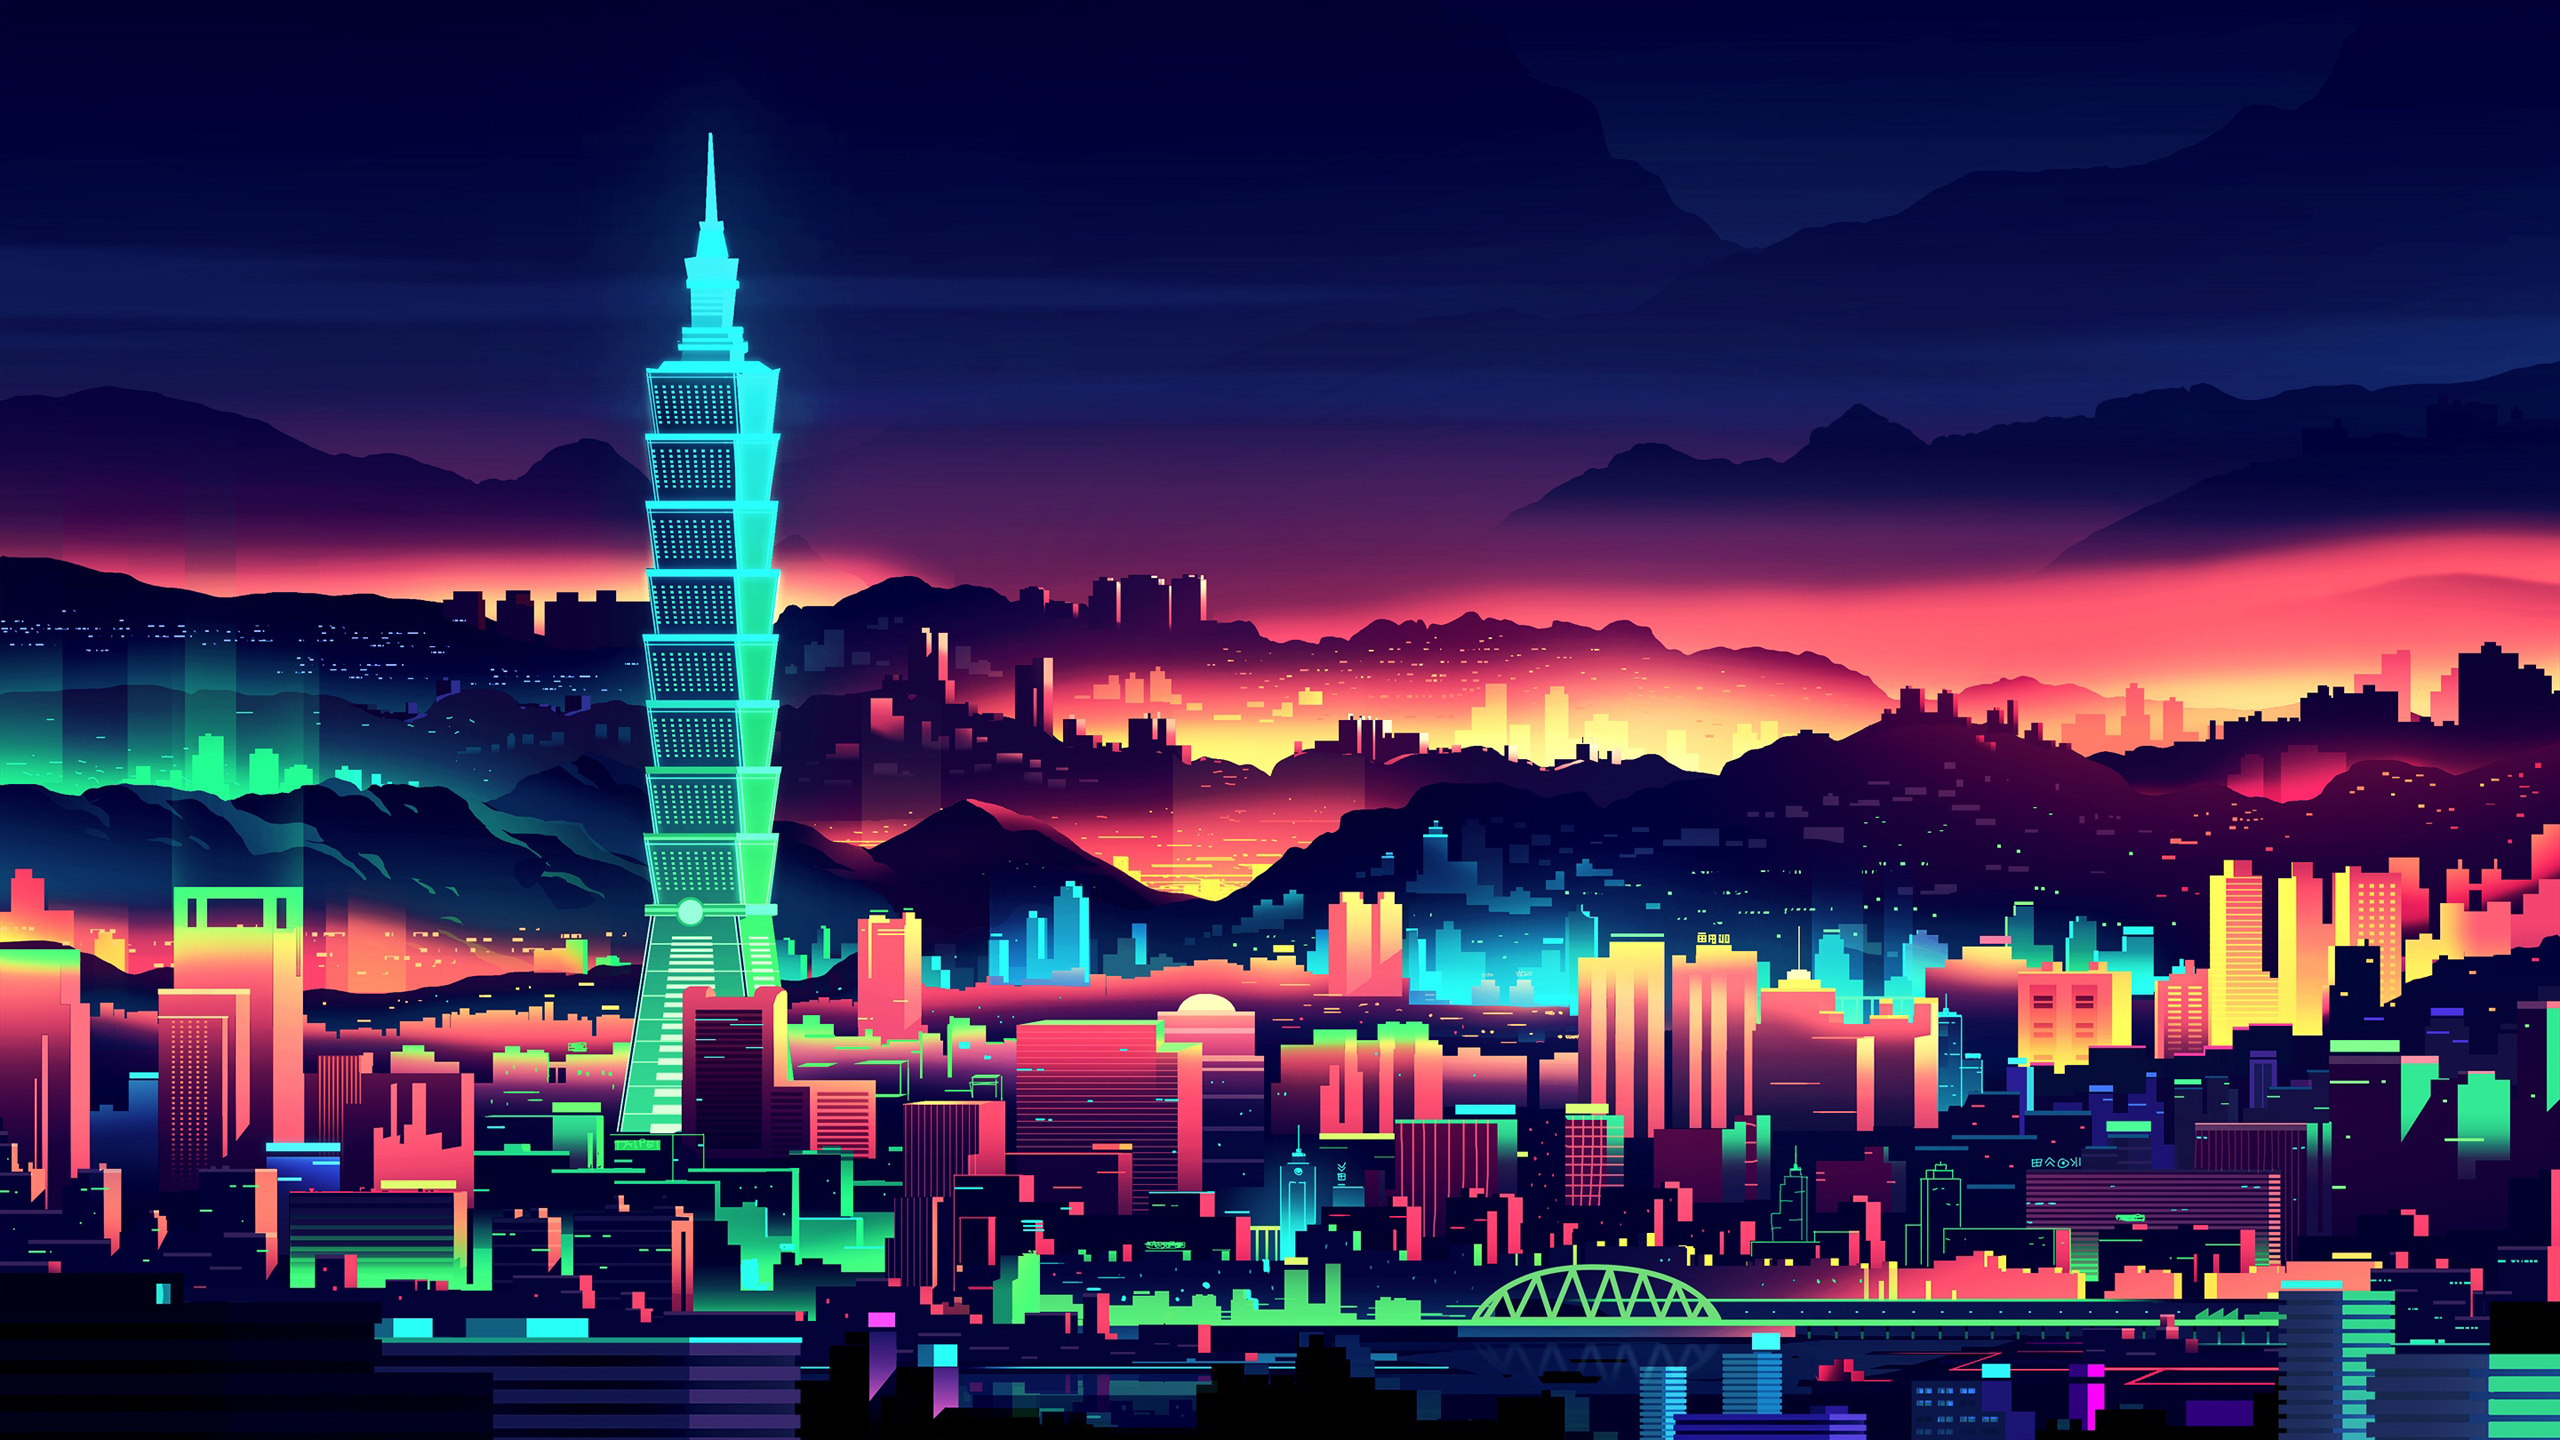 Retro Wallpapers Posted By Ryan Anderson